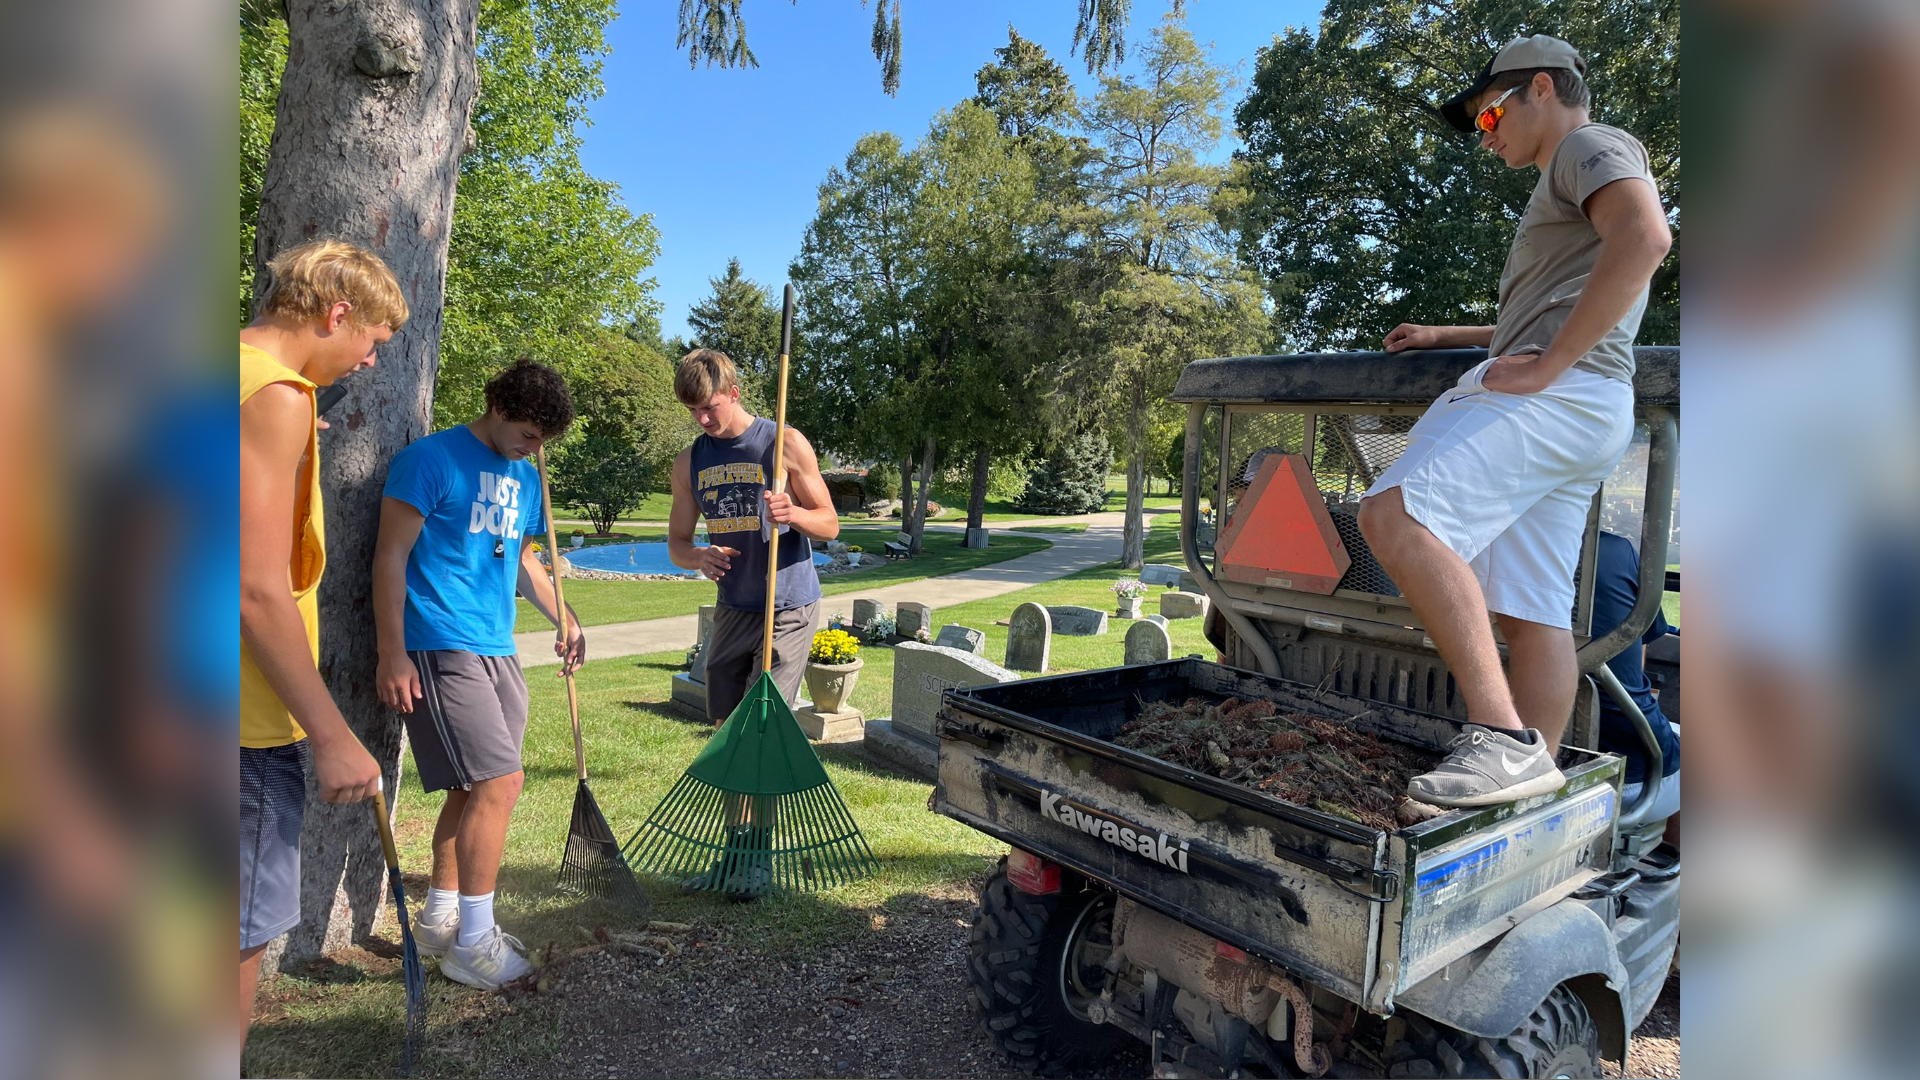 9-18-21 PW FALL CLEAN UP